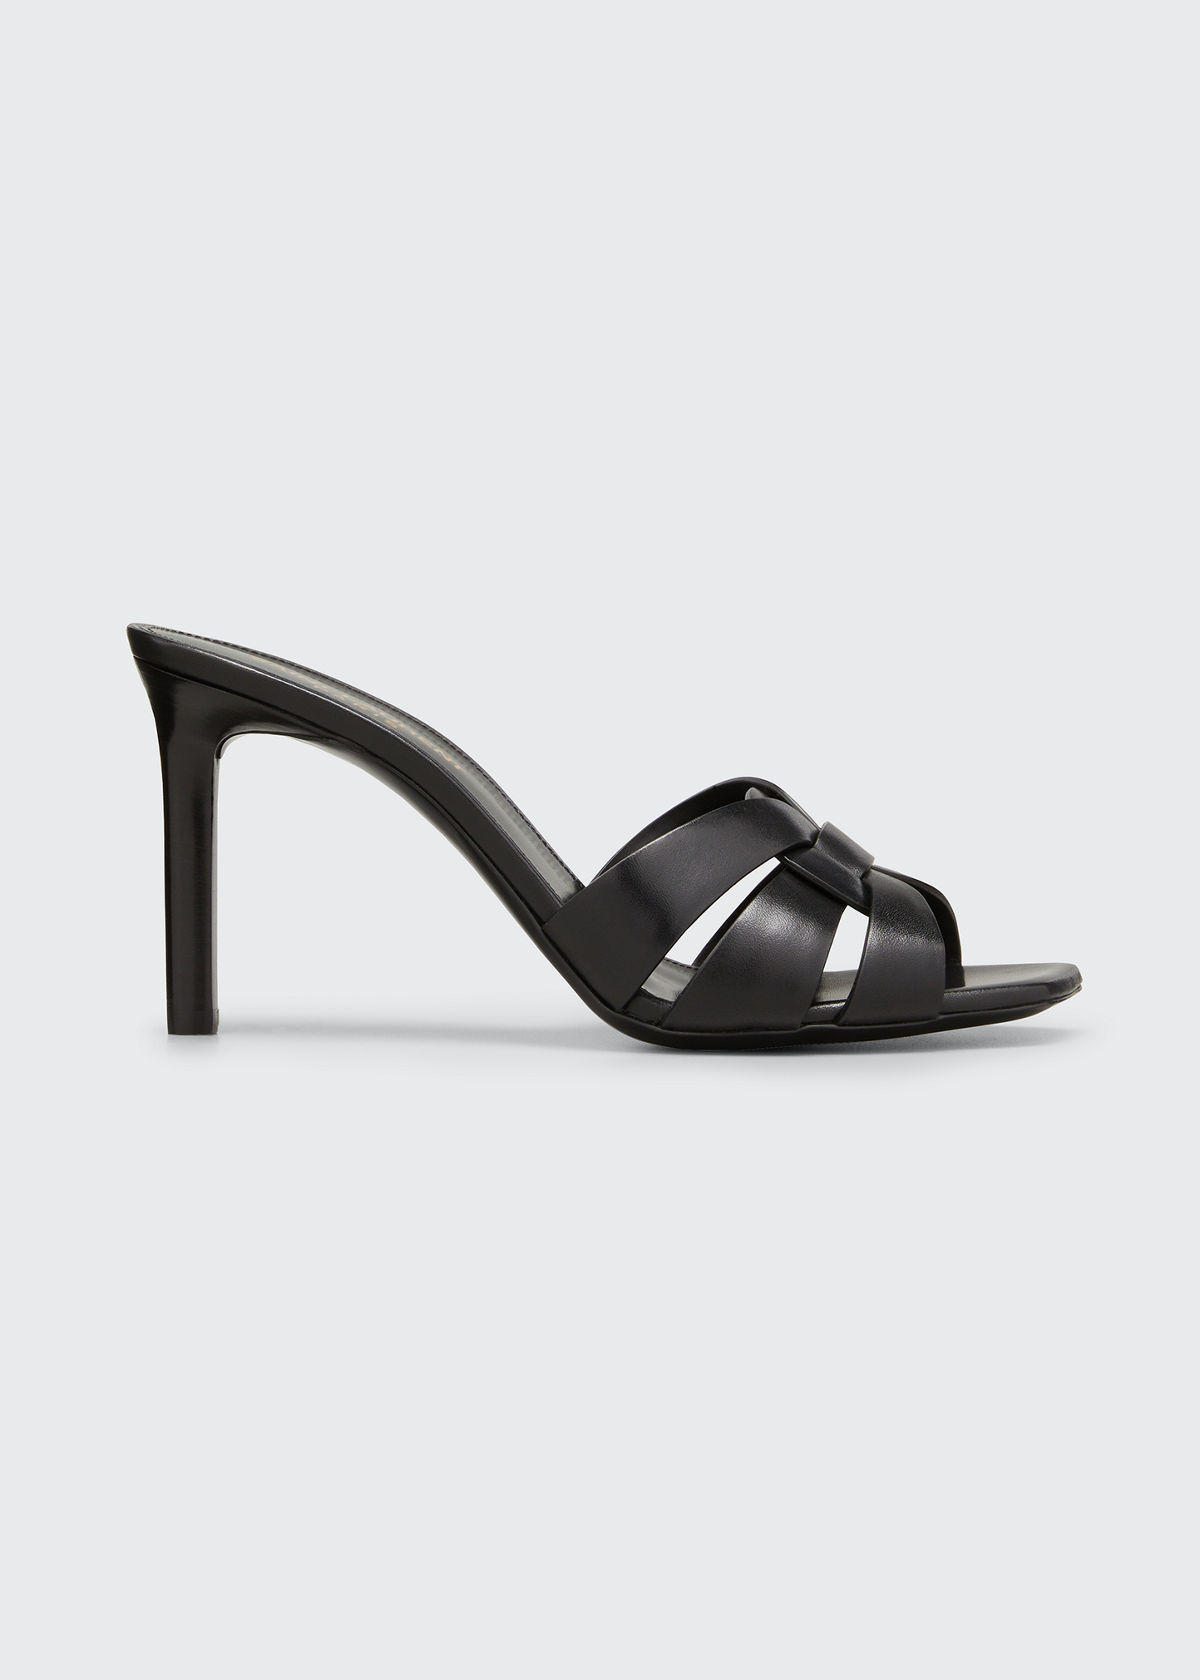 Saint Laurent TRIBUTE WOVEN CALFSKIN STILETTO SANDALS